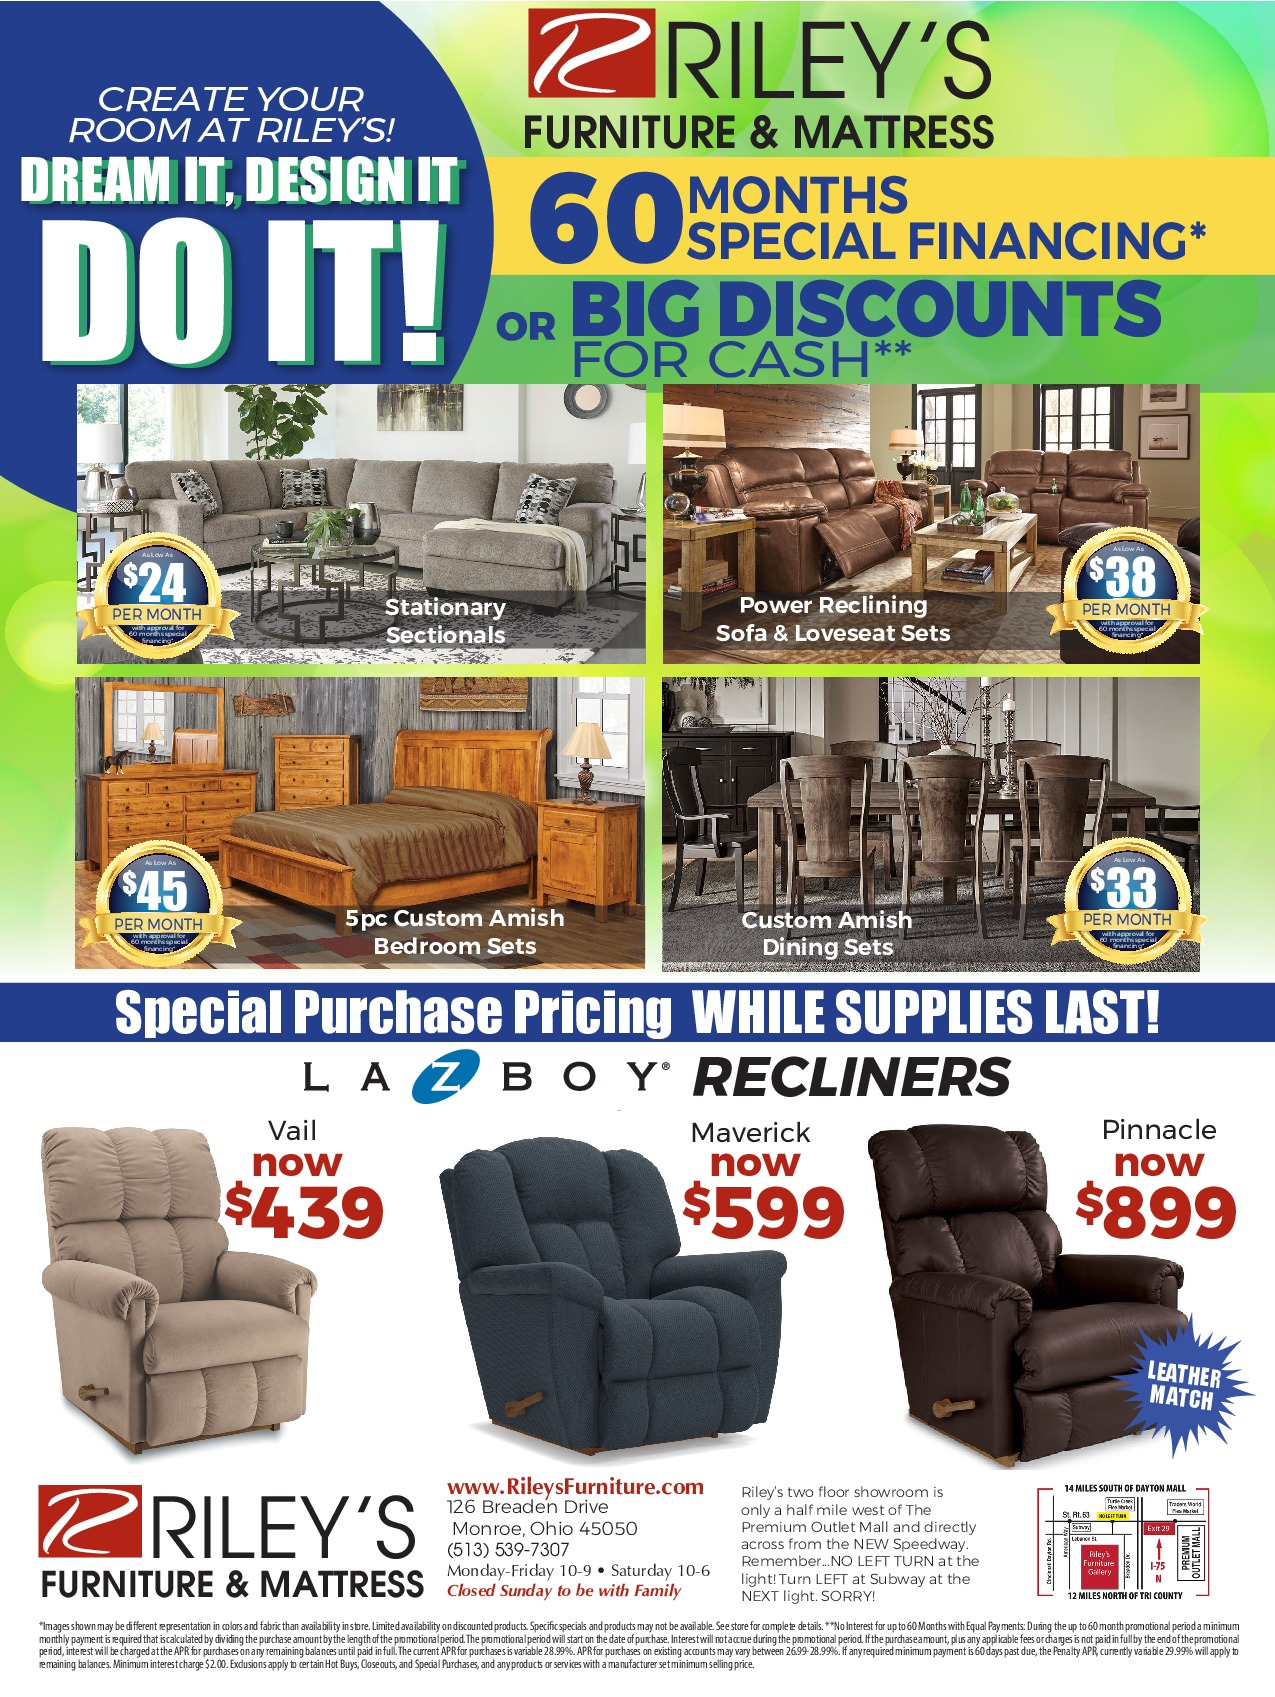 rile1-19108 - Town Money Saver - August 2019